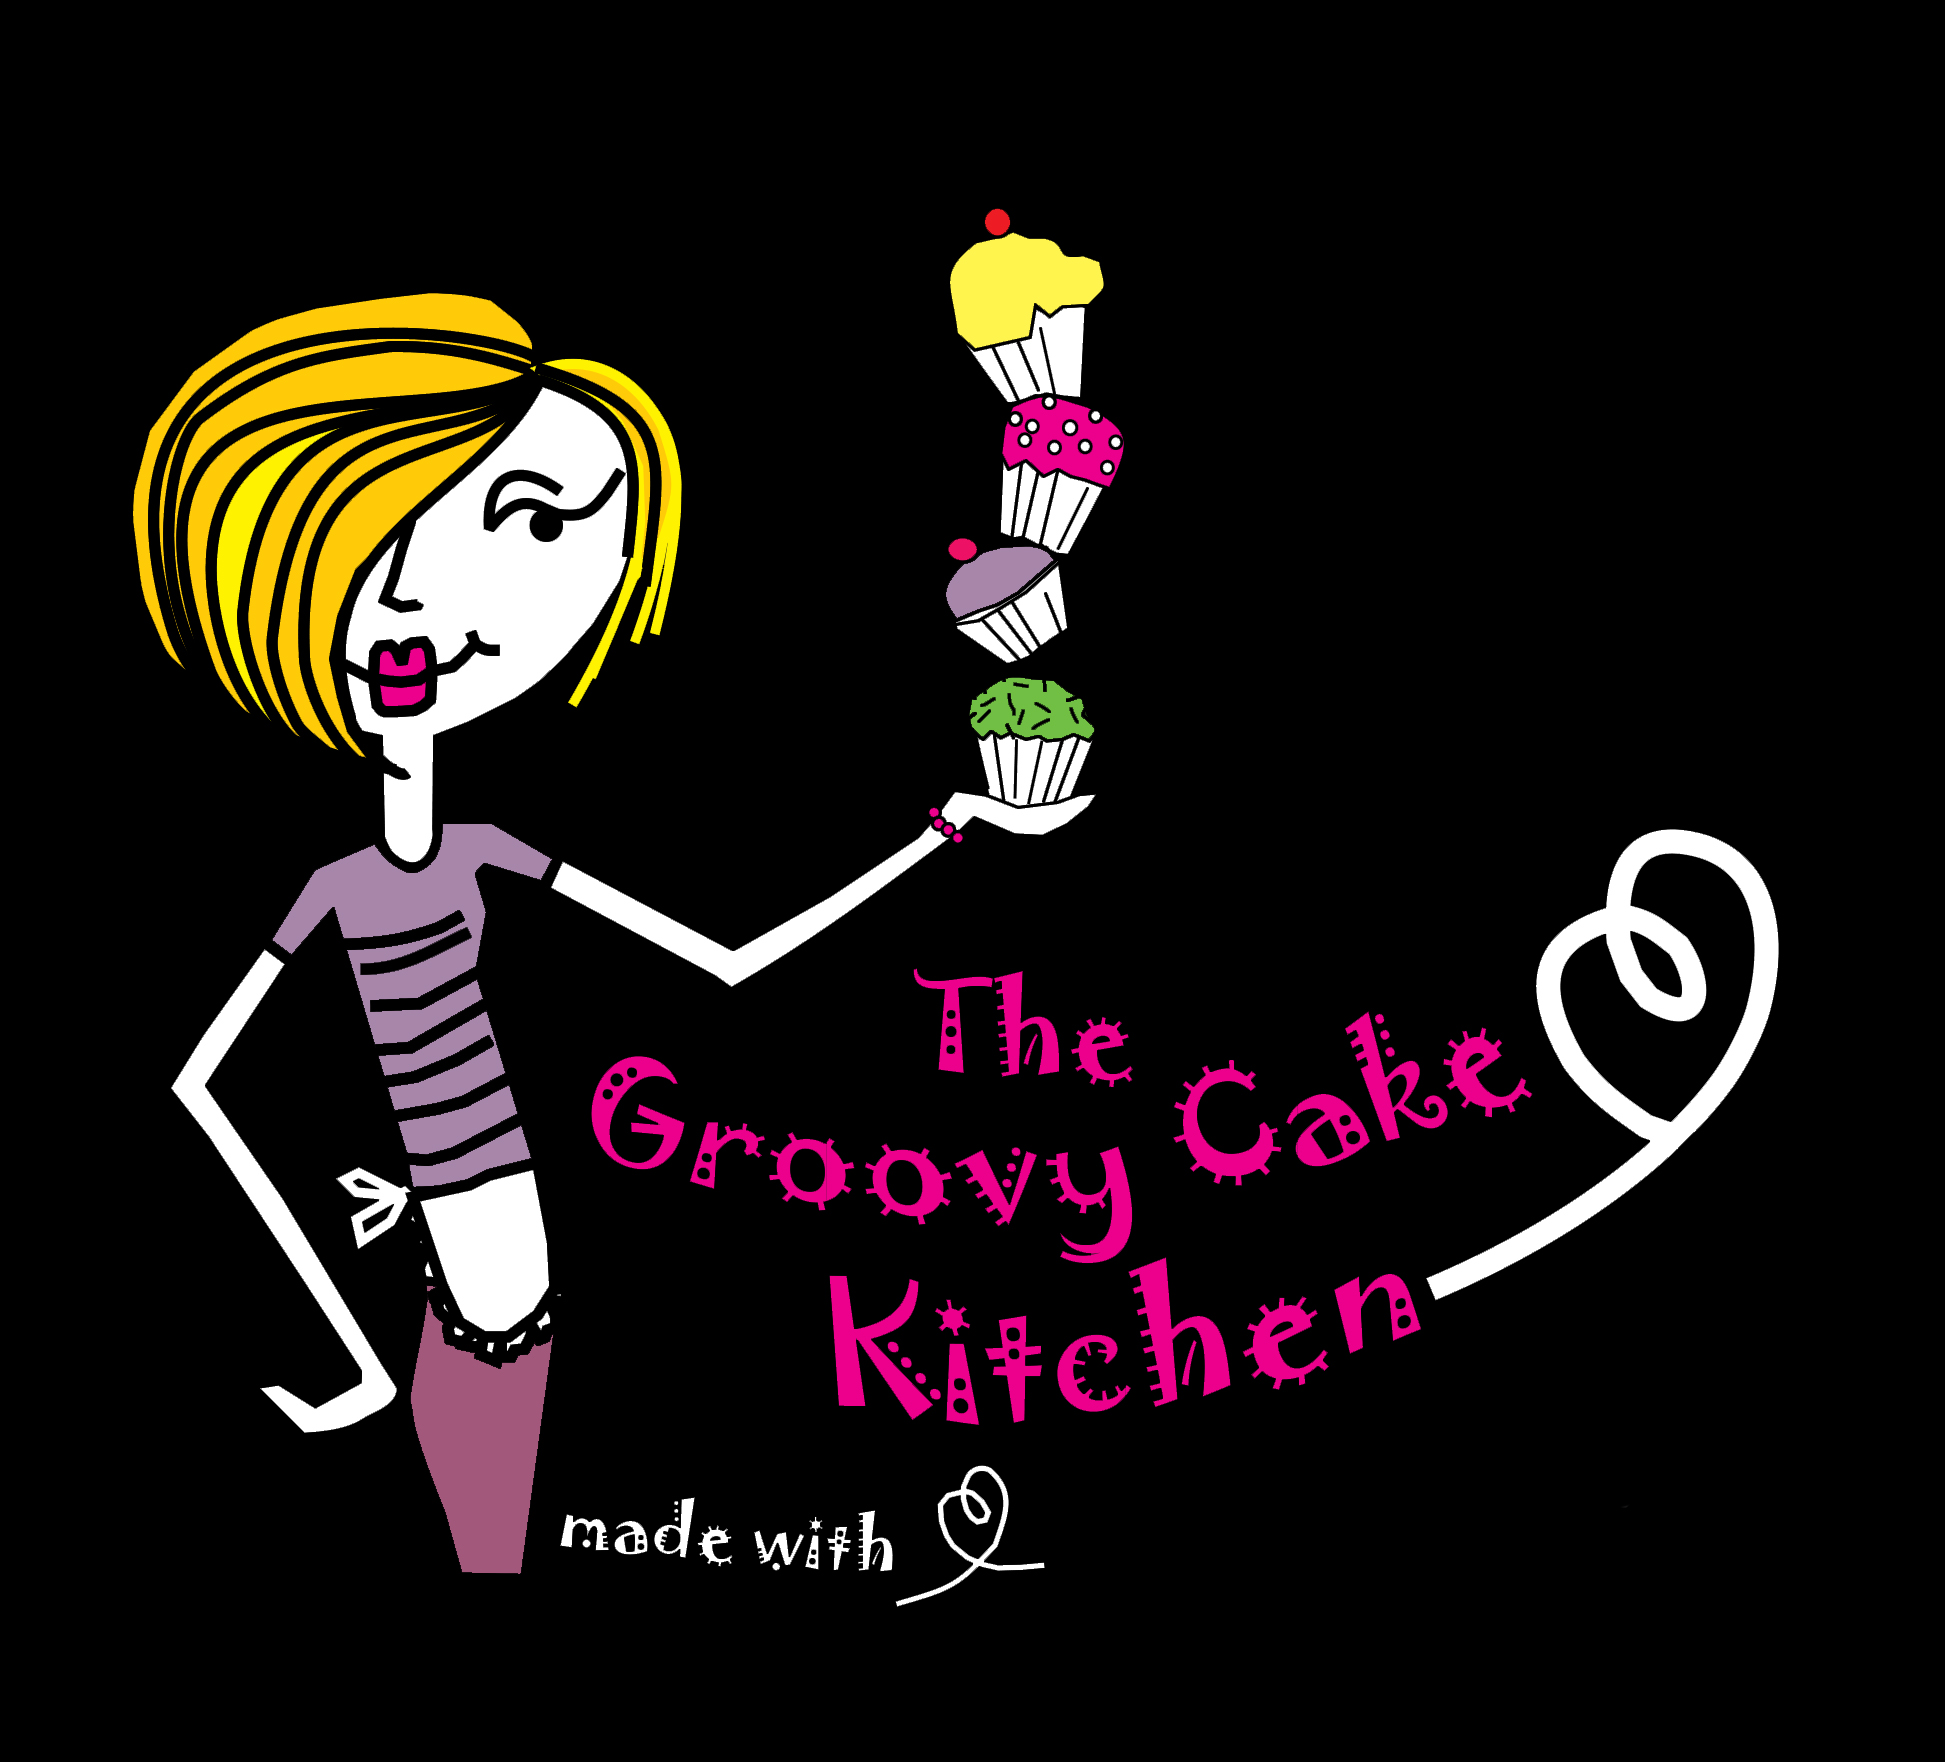 The Groovy Cake Kitchen | www.groovycakes.co.nz Logo